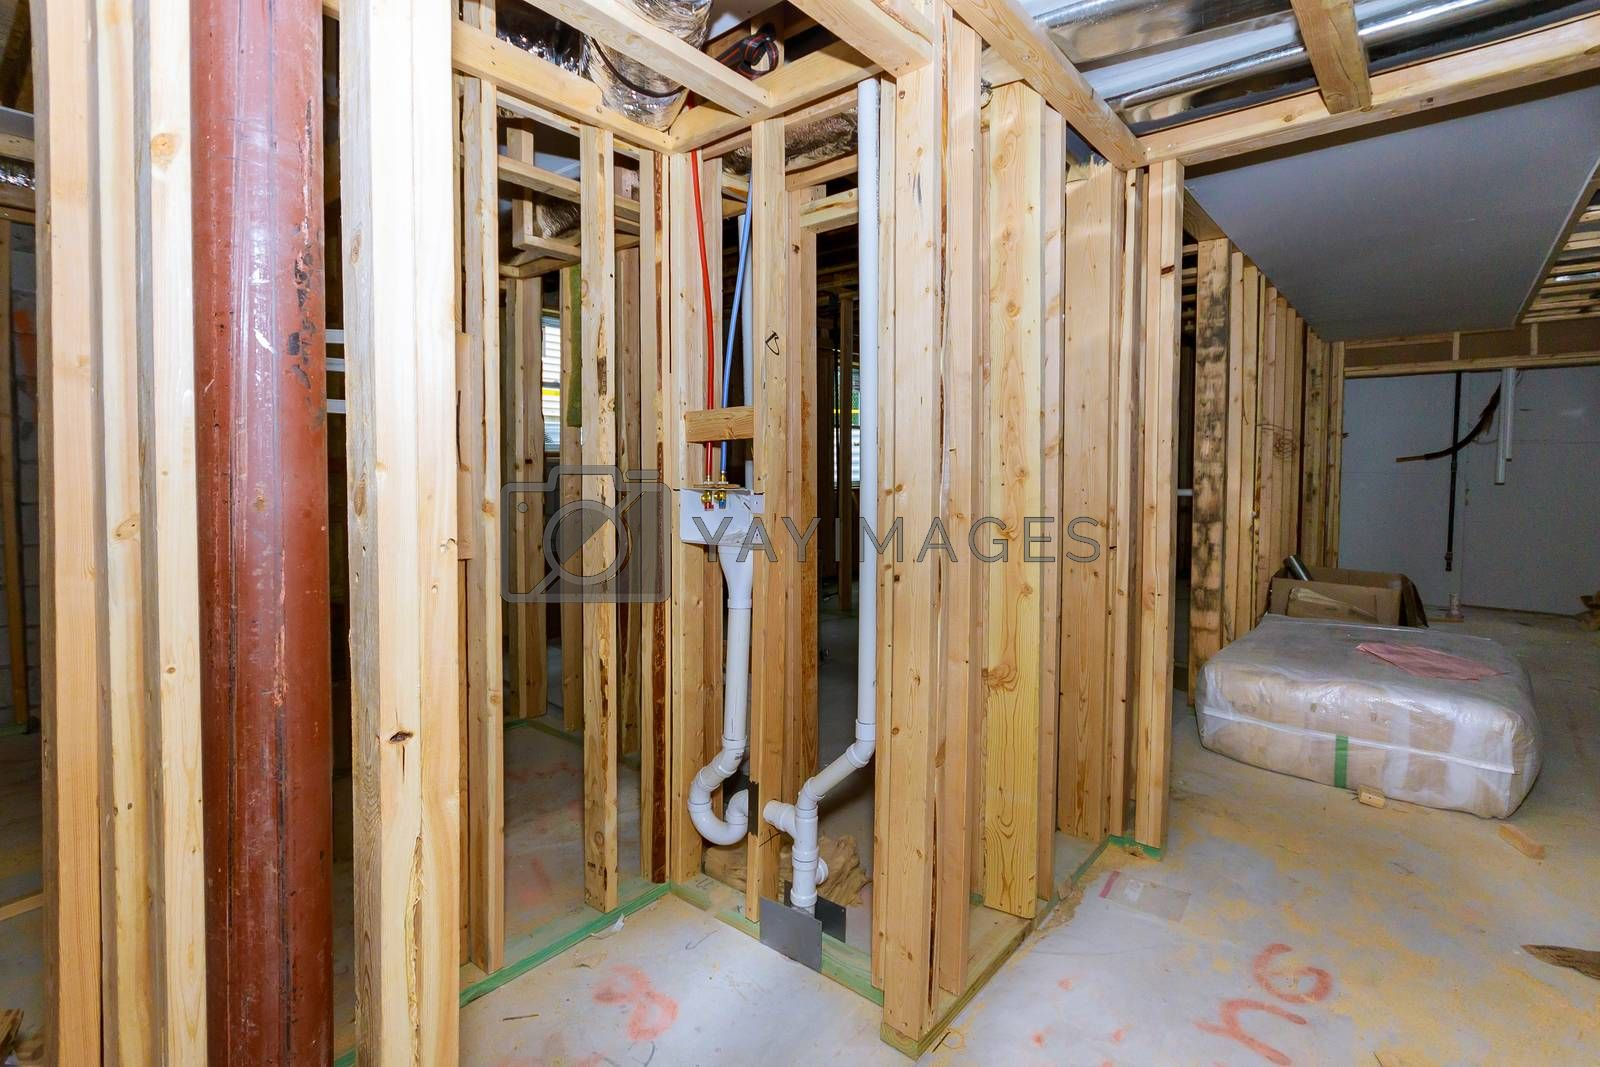 Home construction with plumbing for the laundry room unfinished basement interior stick built frame